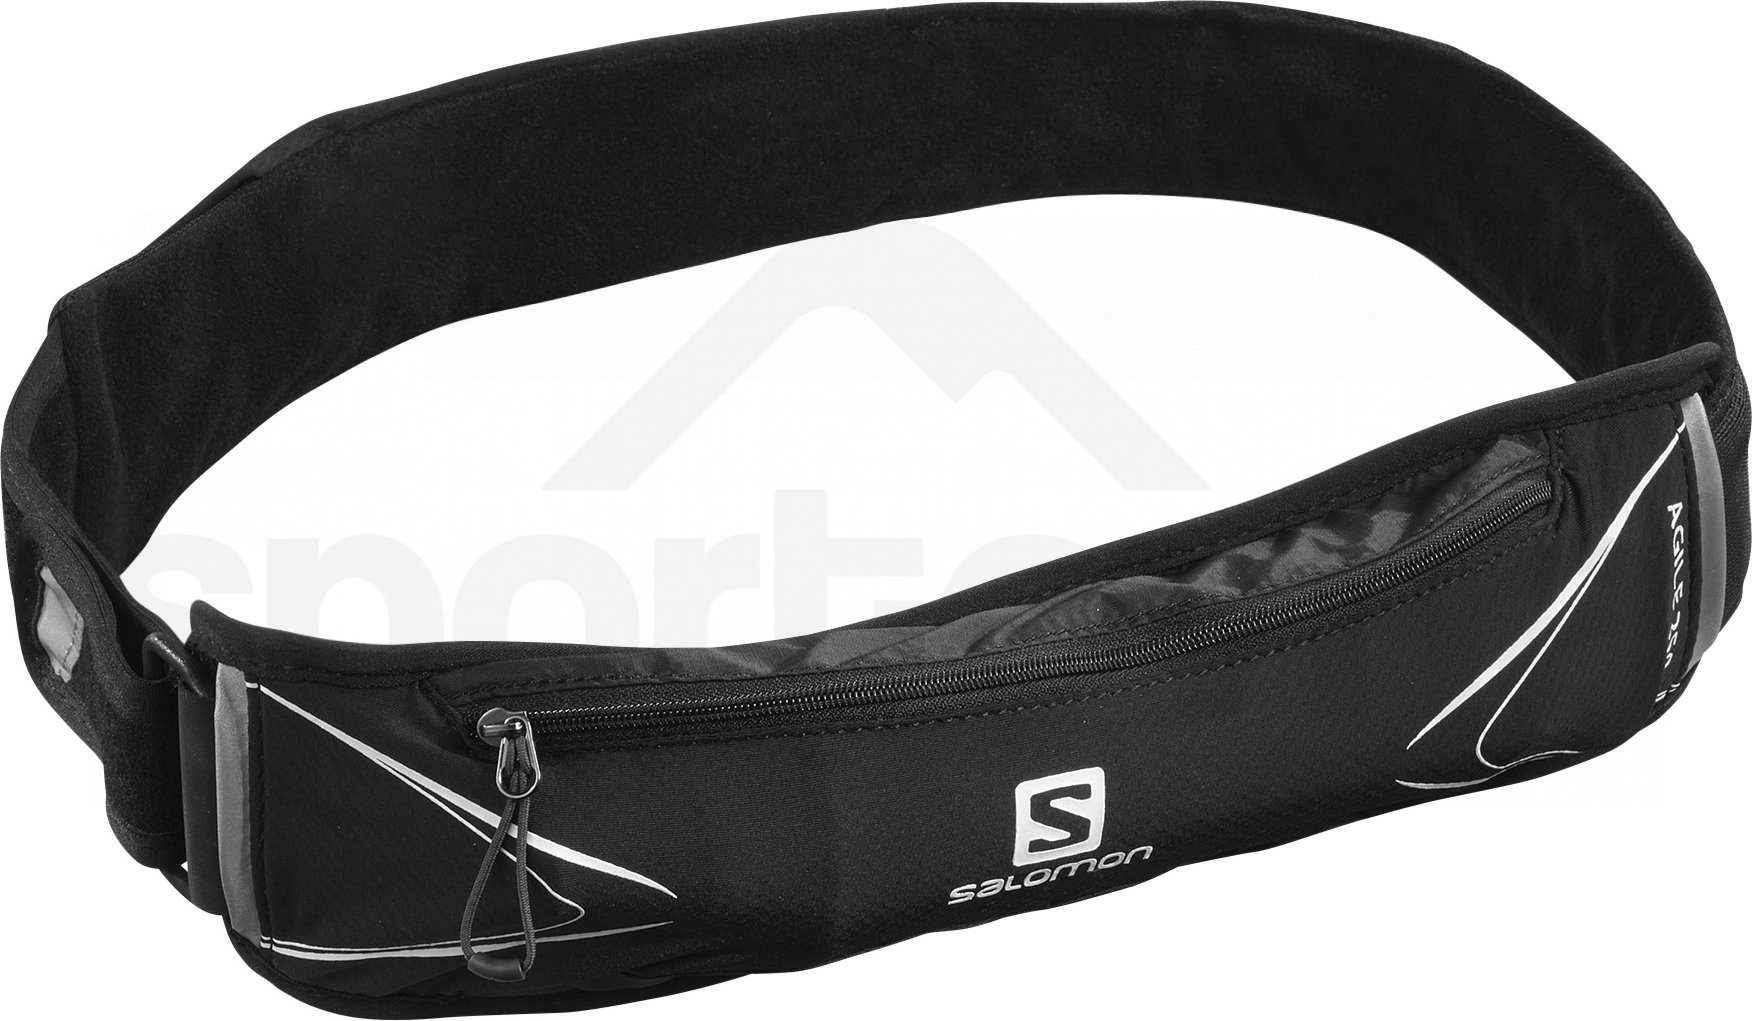 LC1520600_0_GHO_S- AGILE 250 SET BELT Black.jpg.cq5dam.web.1021.1752